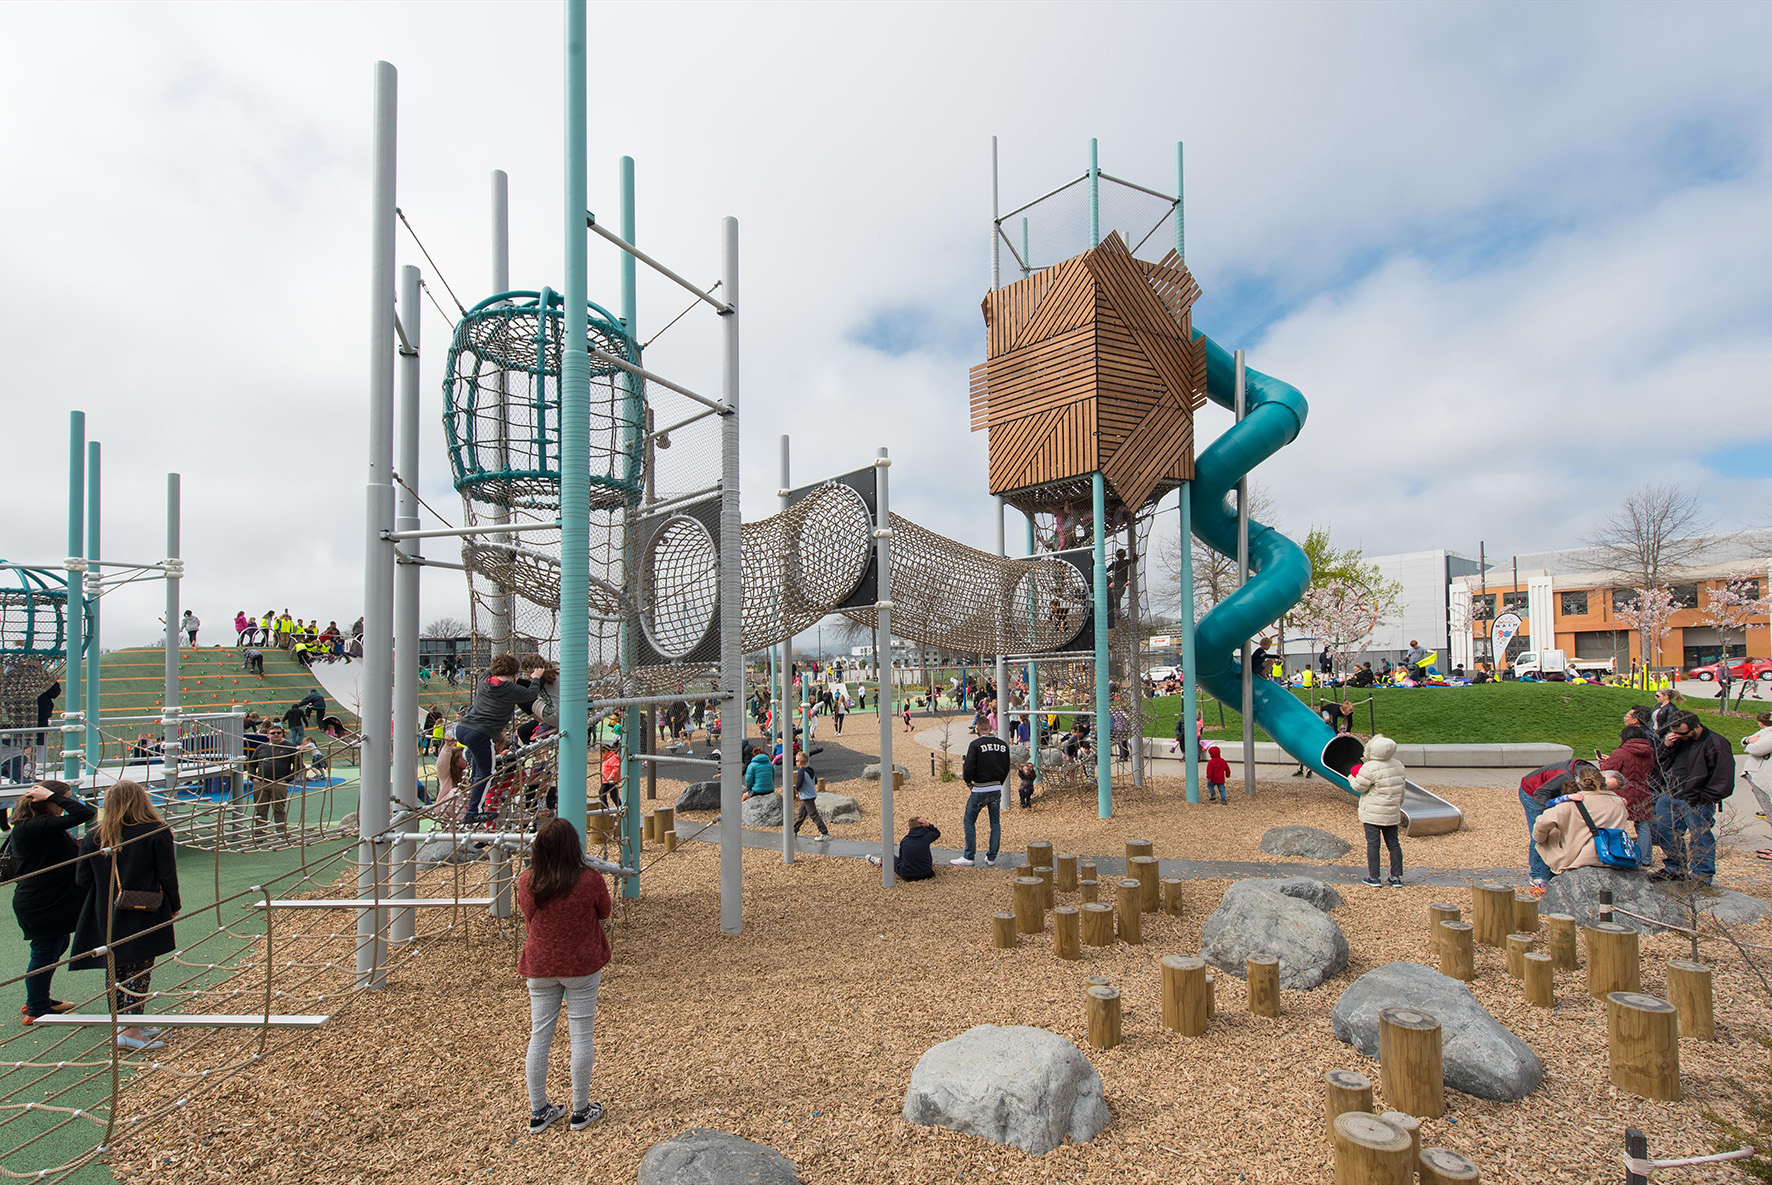 Tākaro ā Poi - the Margaret Mahy Family Playground has 8000m2 play space for all ages and abilities. It's had an amazing 500,000+ visitors since opening.